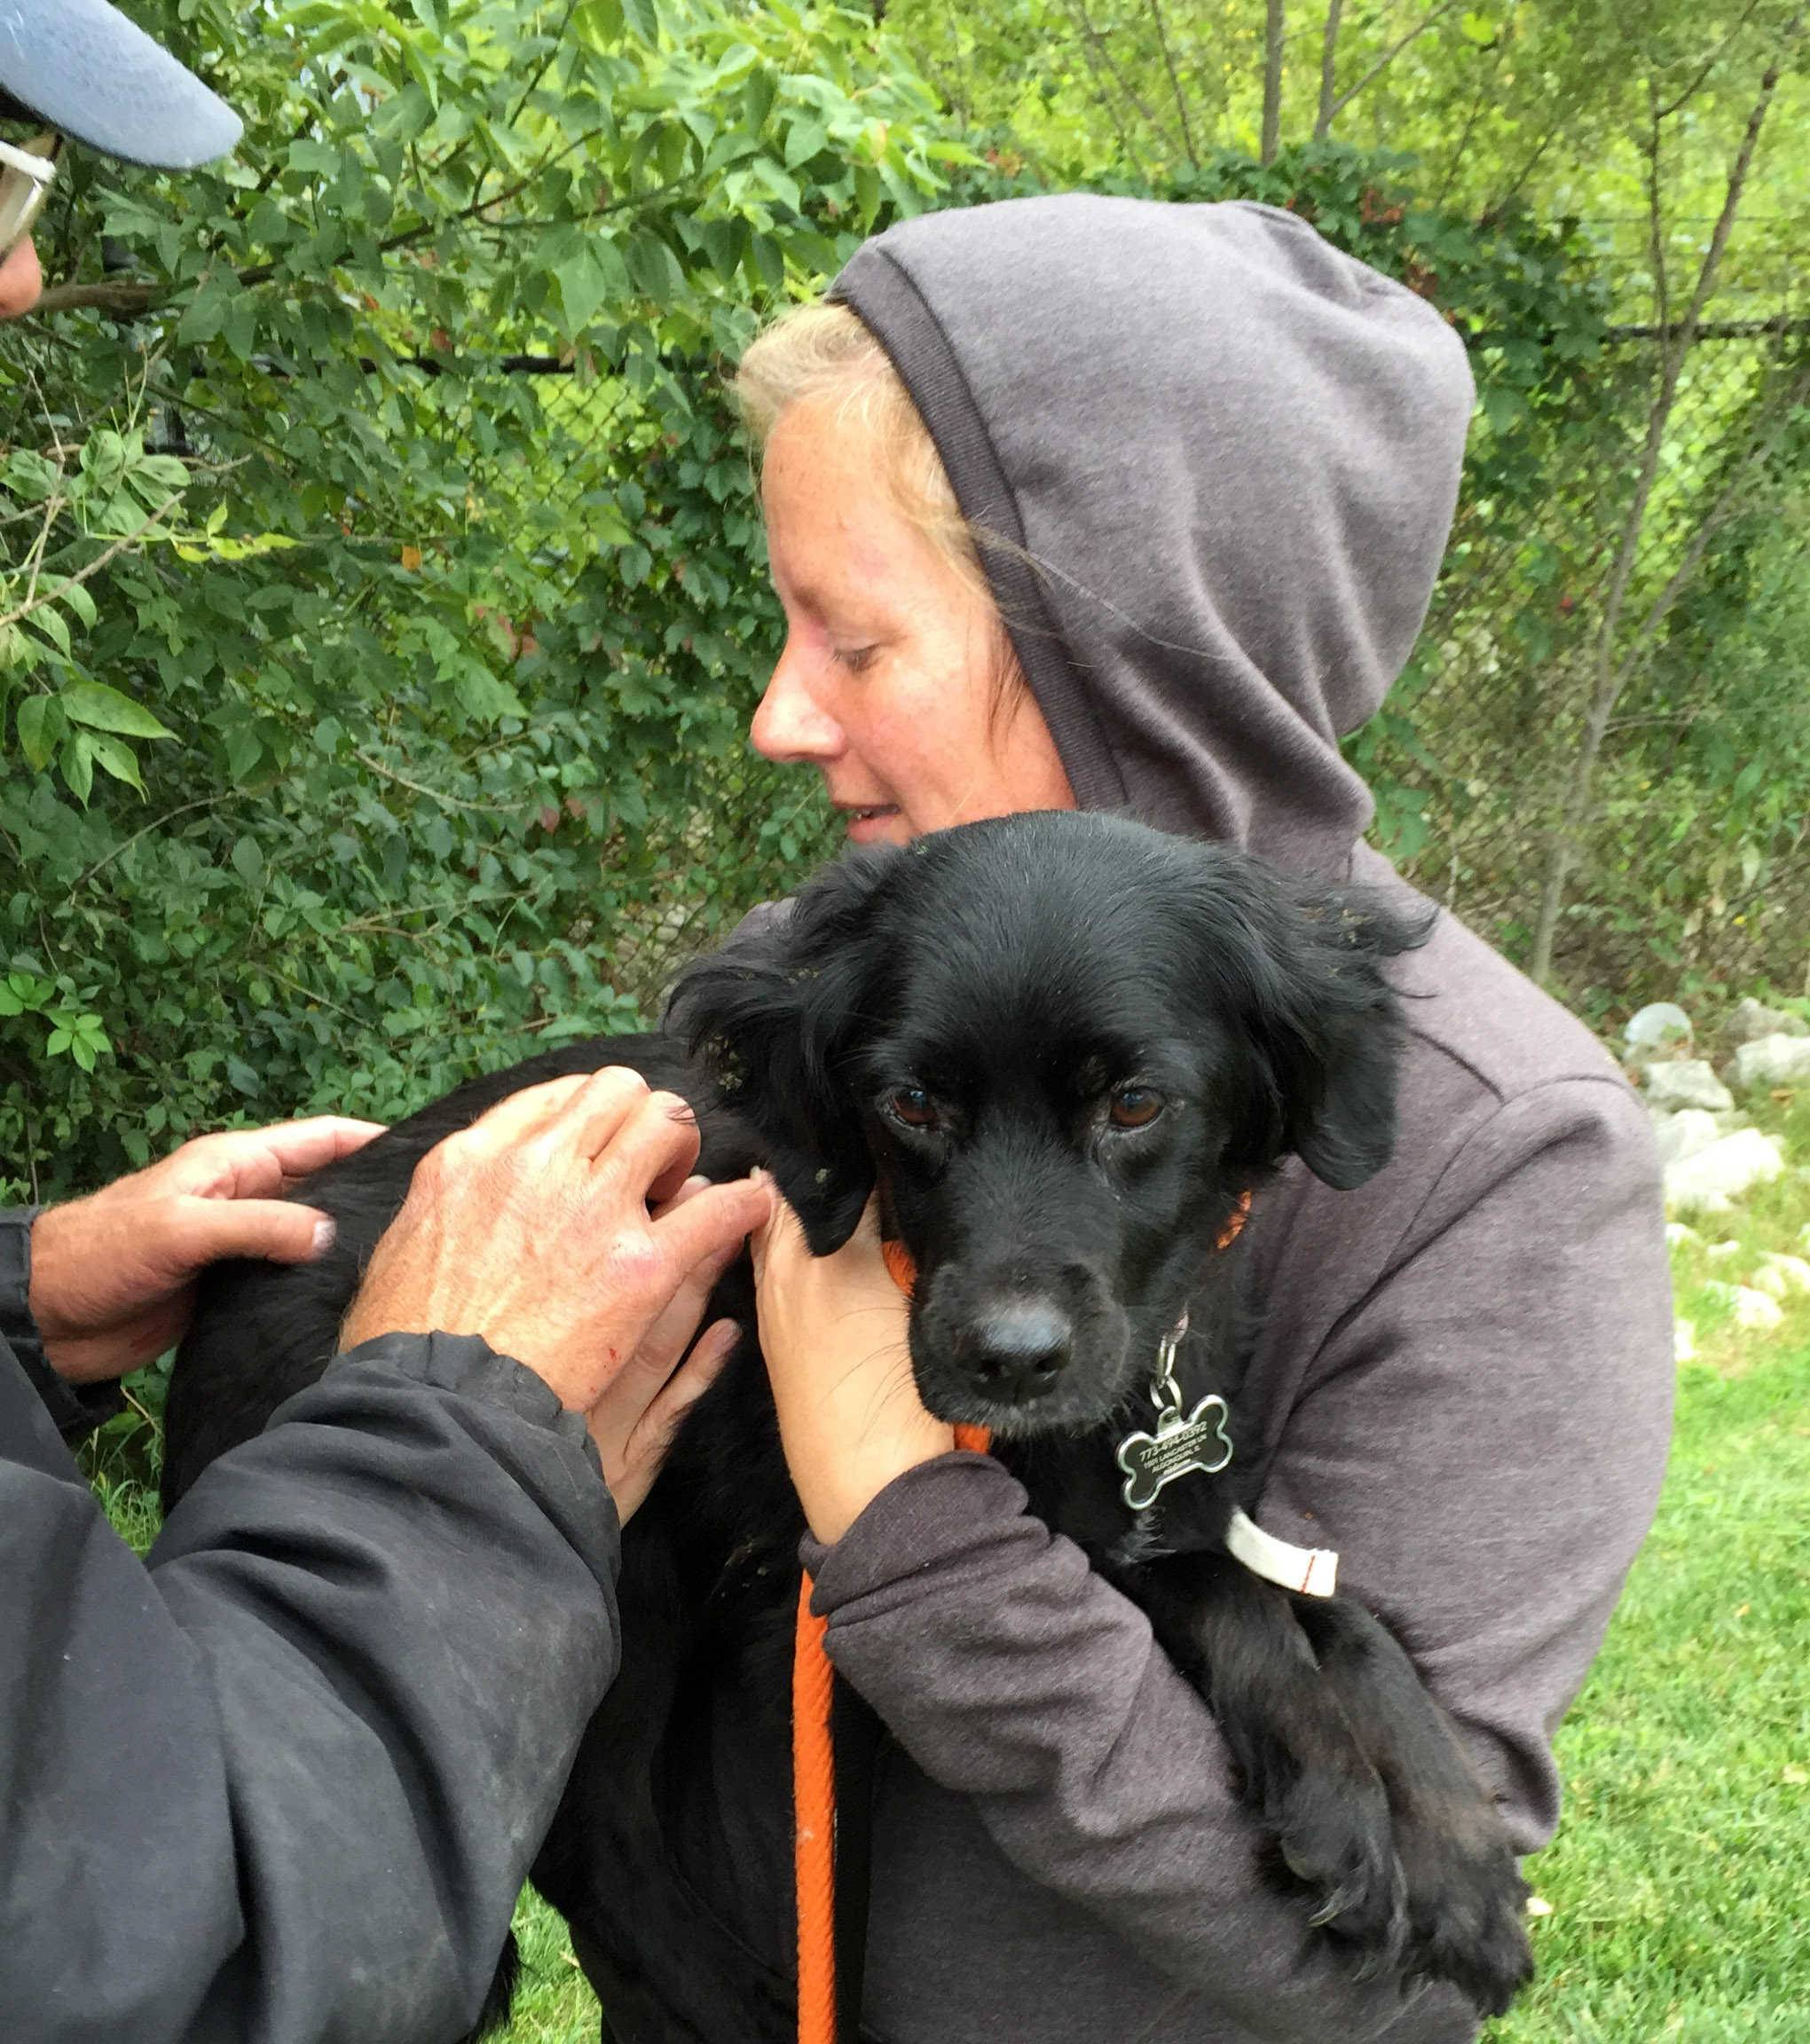 Terri Templin of Algonquin embraces Wrigley, a 12-year-old Brittany spaniel/Labrador retriever mix, that had been missing for 15 days. The dog was the object of a massive, multi-community search that ended happily on Wednesday.